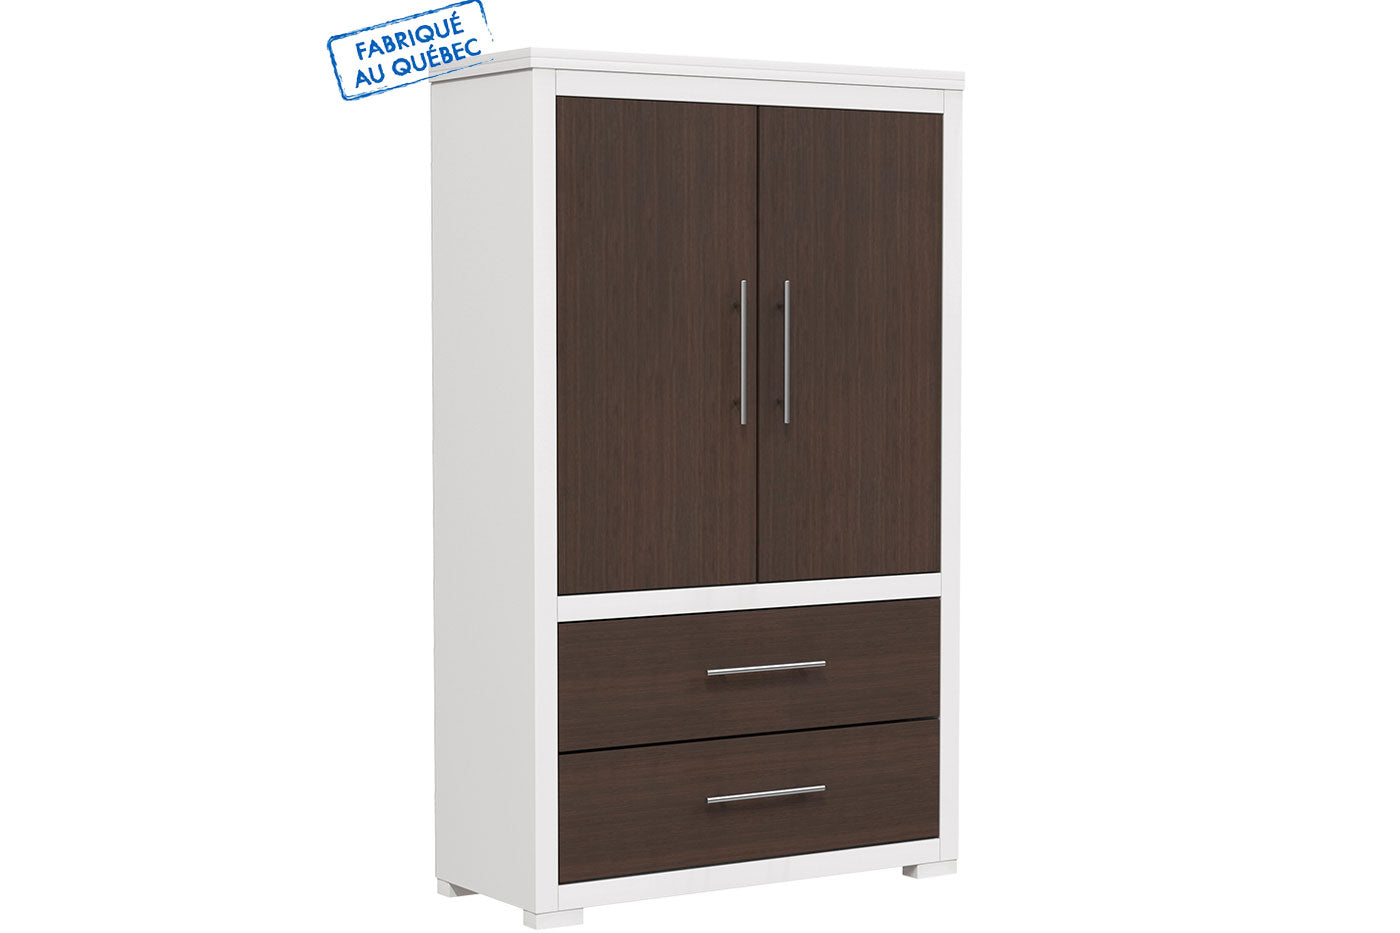 Barton wardrobe in wooden finish - Walnut and white wood